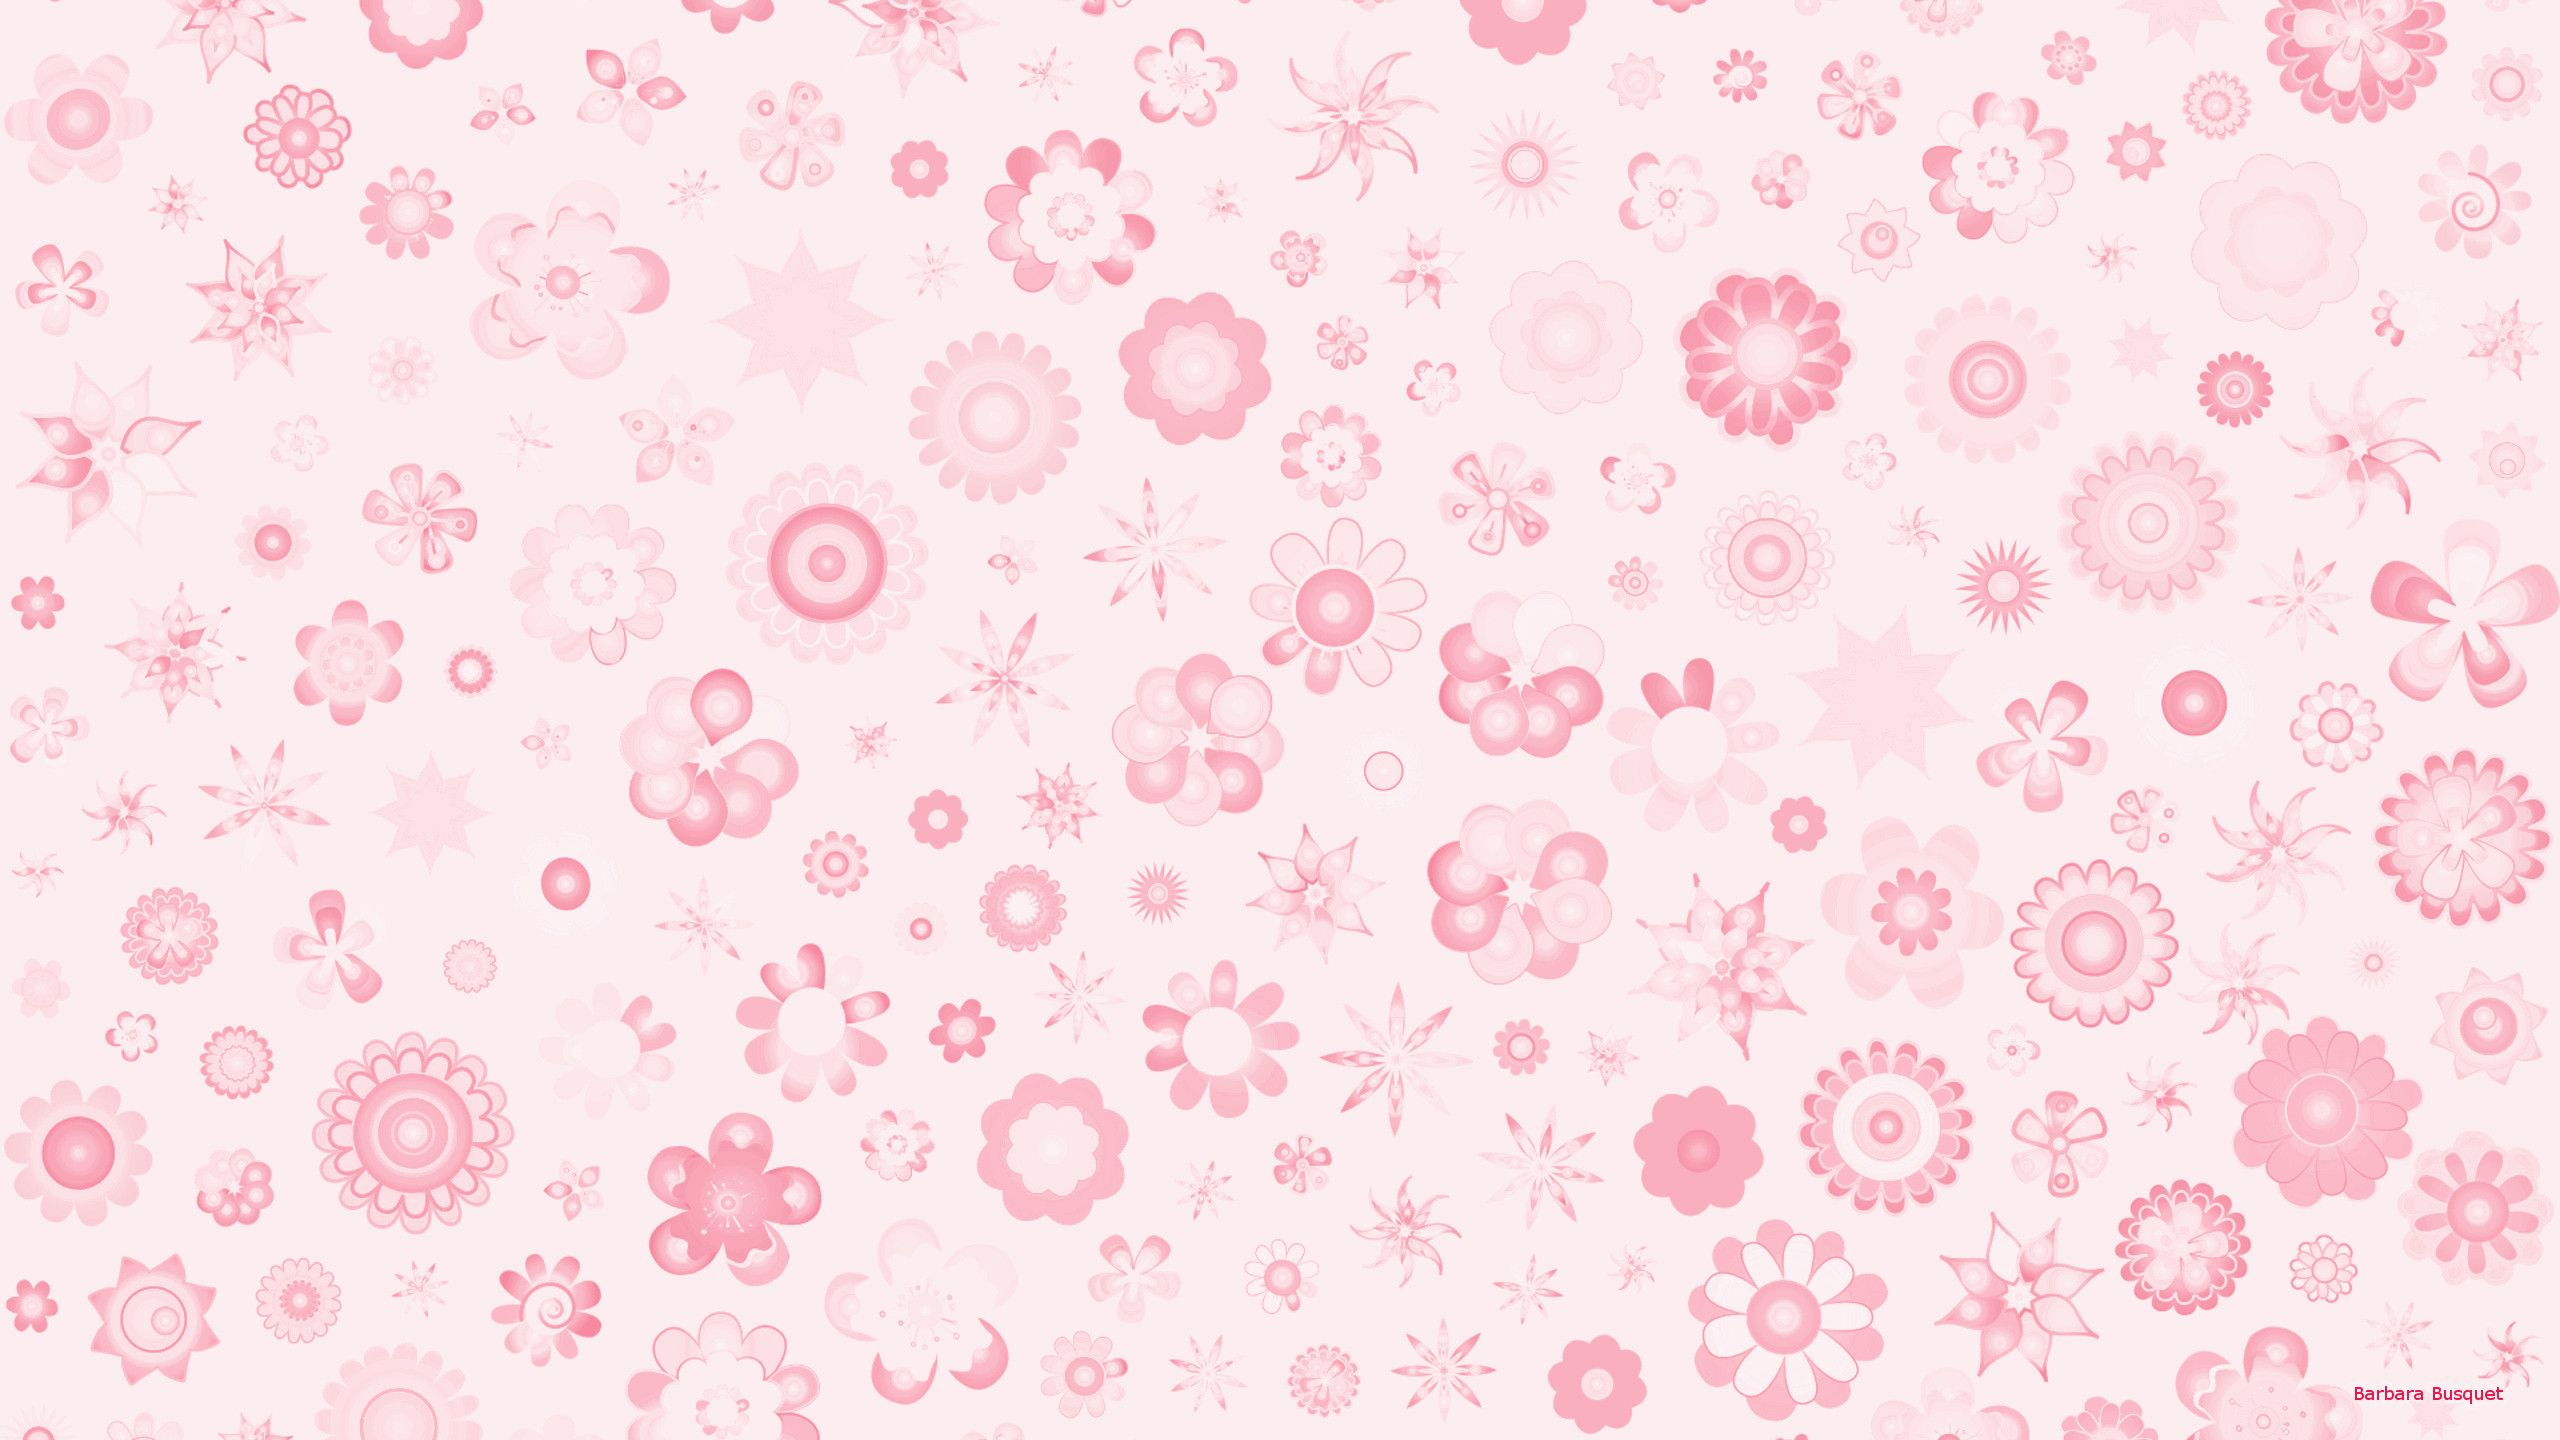 Light Pink Flower Wallpaper | HD Wallpapers | Pinterest | Pink ... for Light Pink Flower Wallpaper  lp00lyp